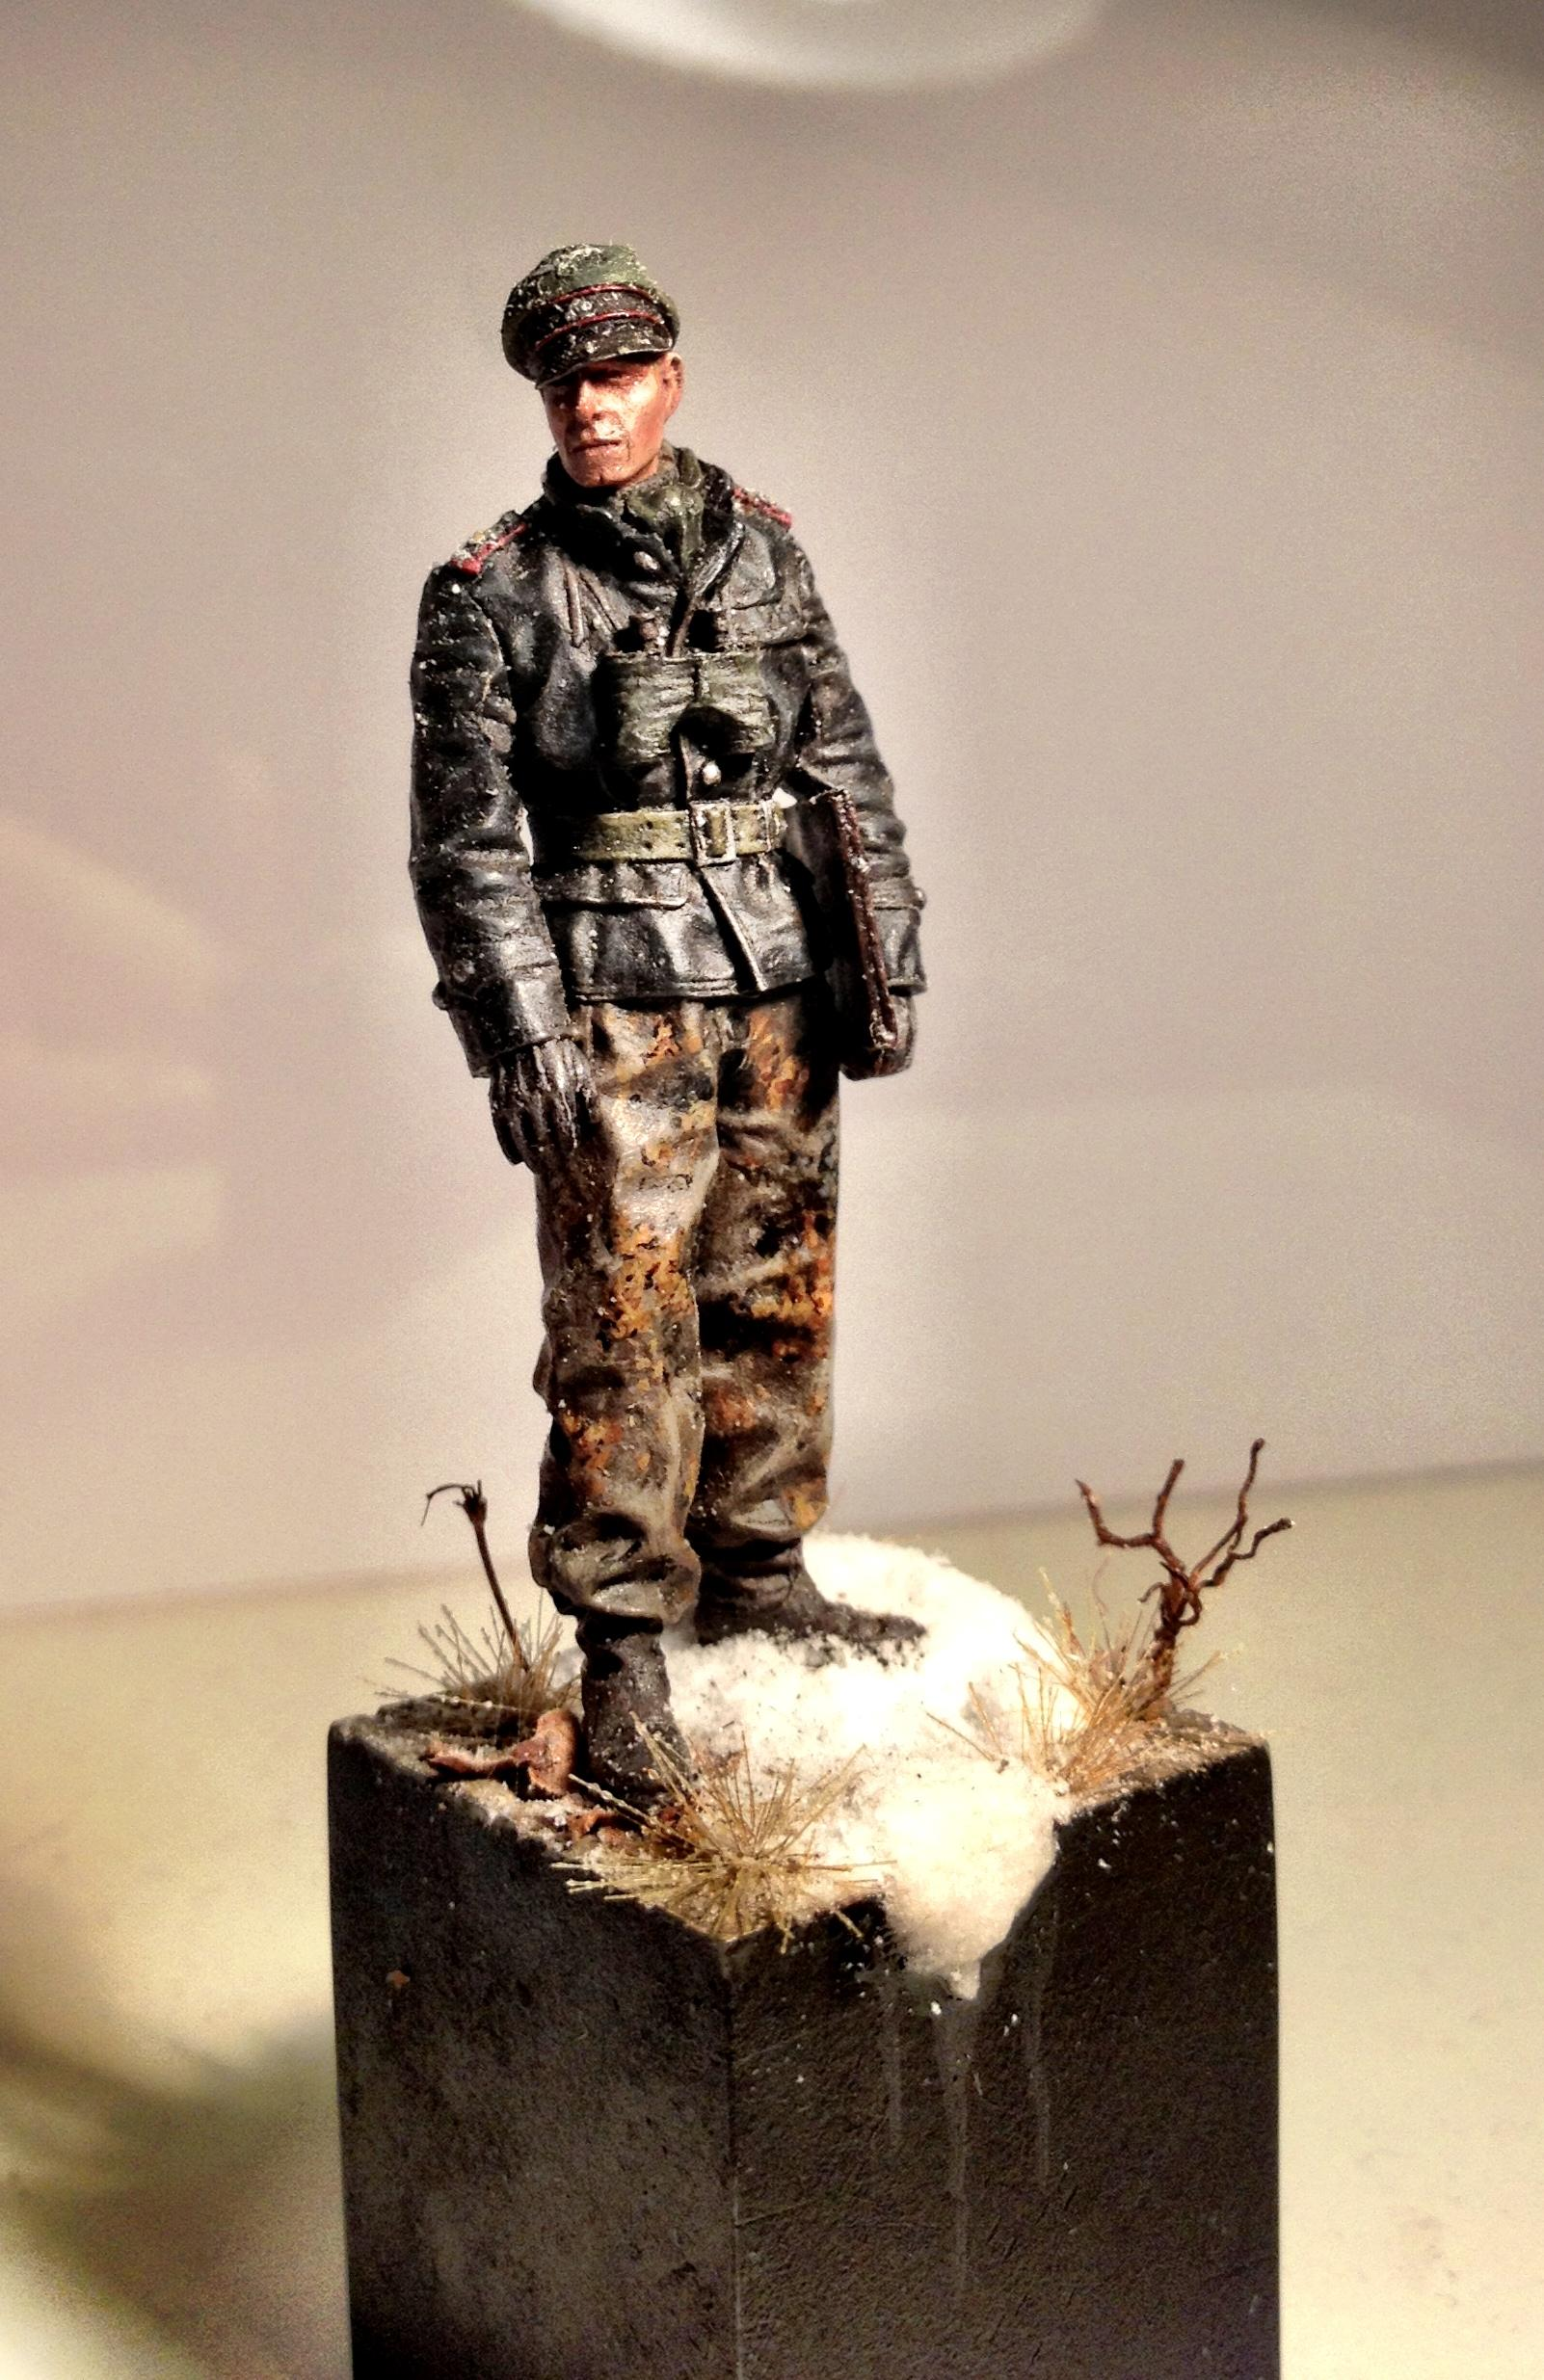 Detailed, Finished, Germans, Life-like, Realistic, World War 2